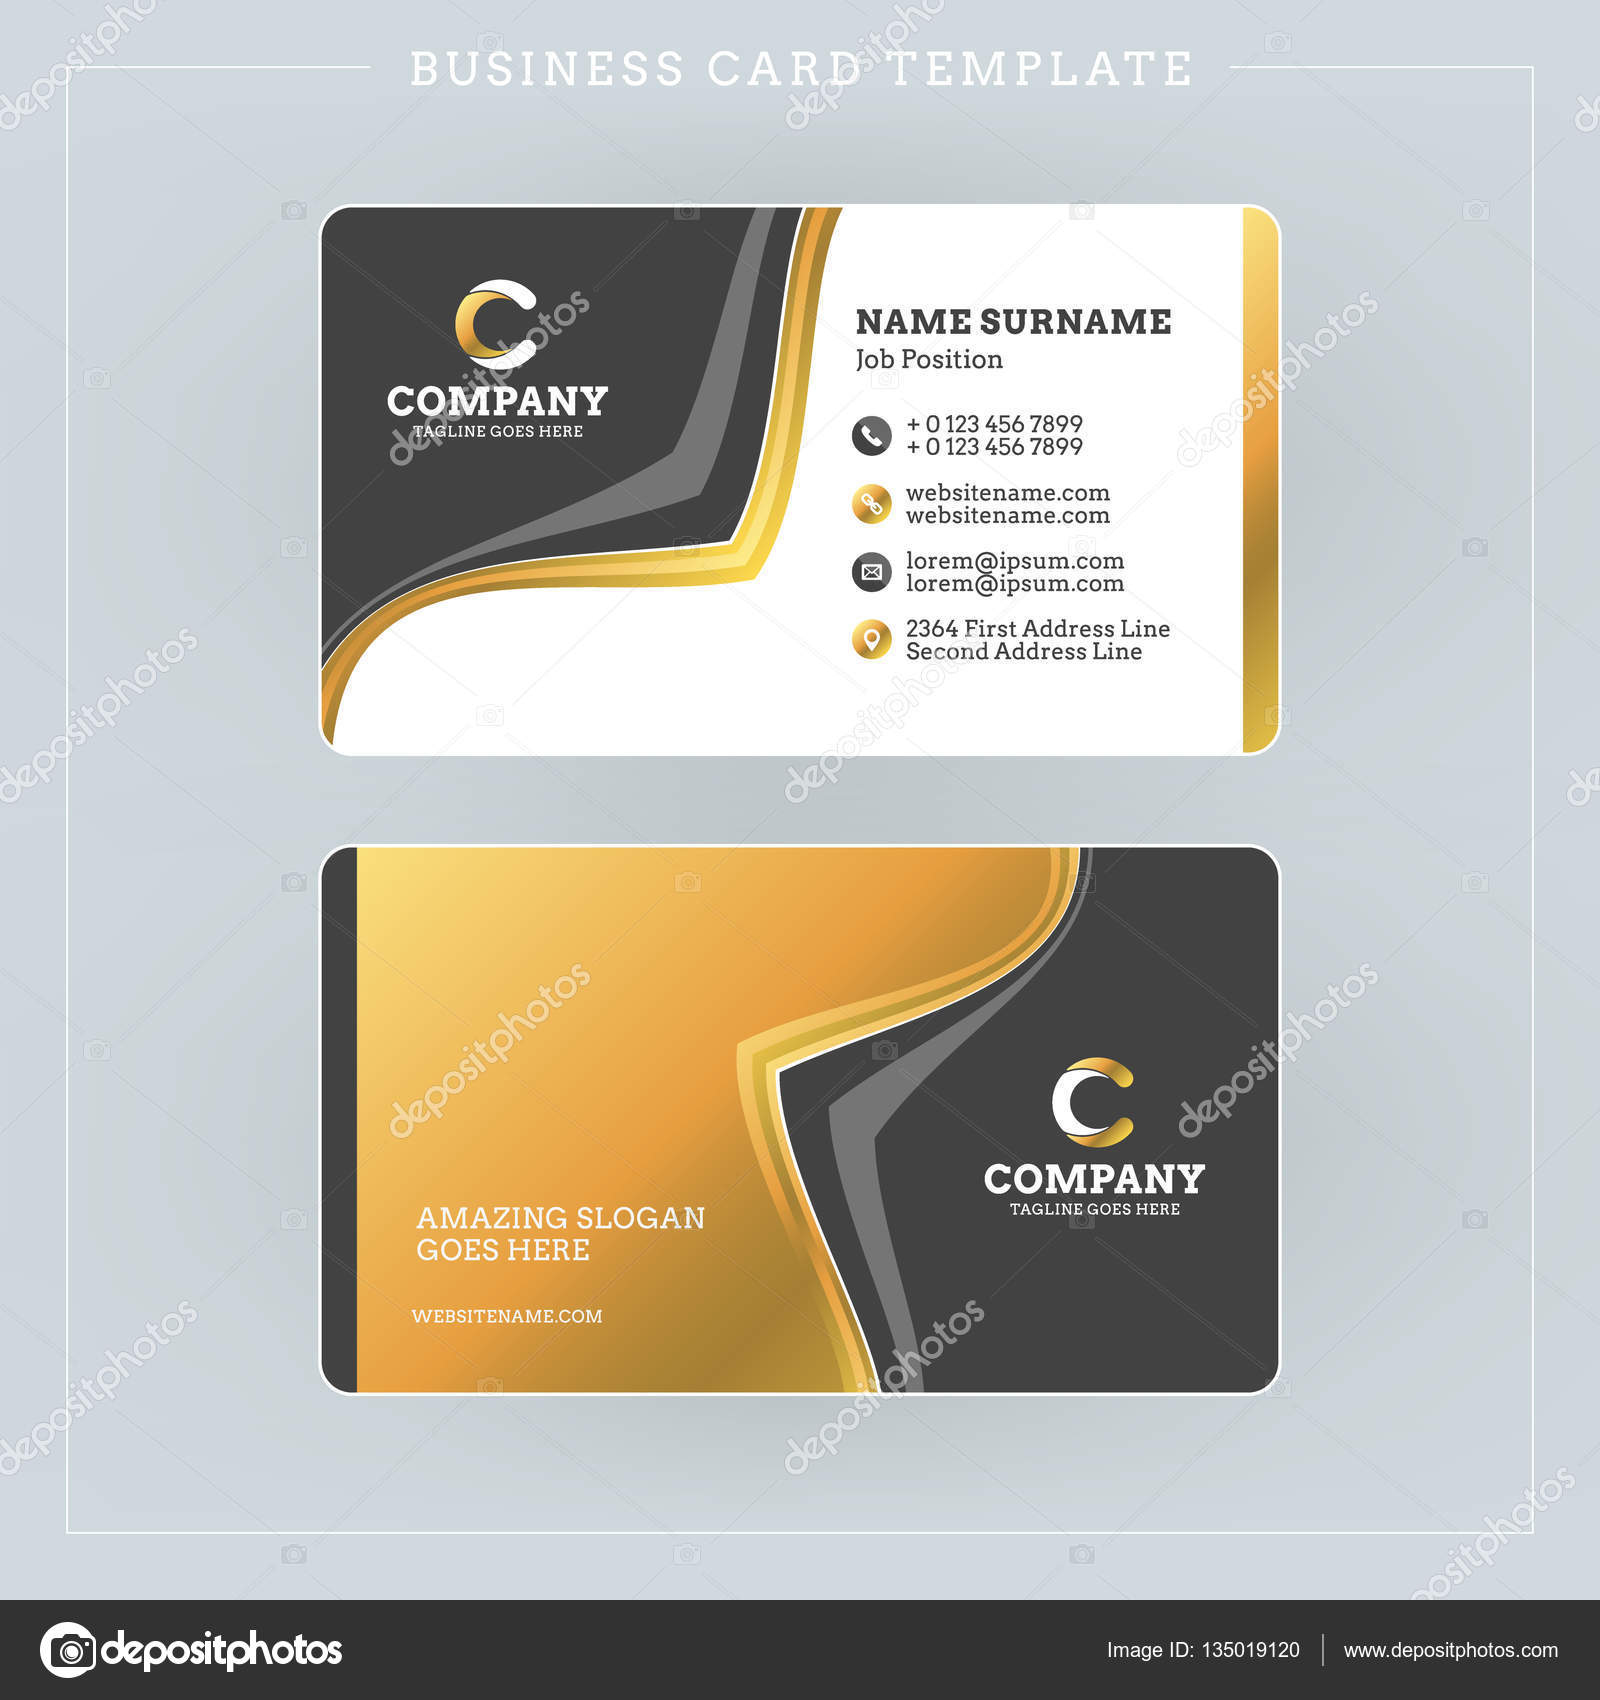 Double sided business card template with abstract golden and black double sided business card template with abstract golden and black waves background vector illustration cheaphphosting Gallery